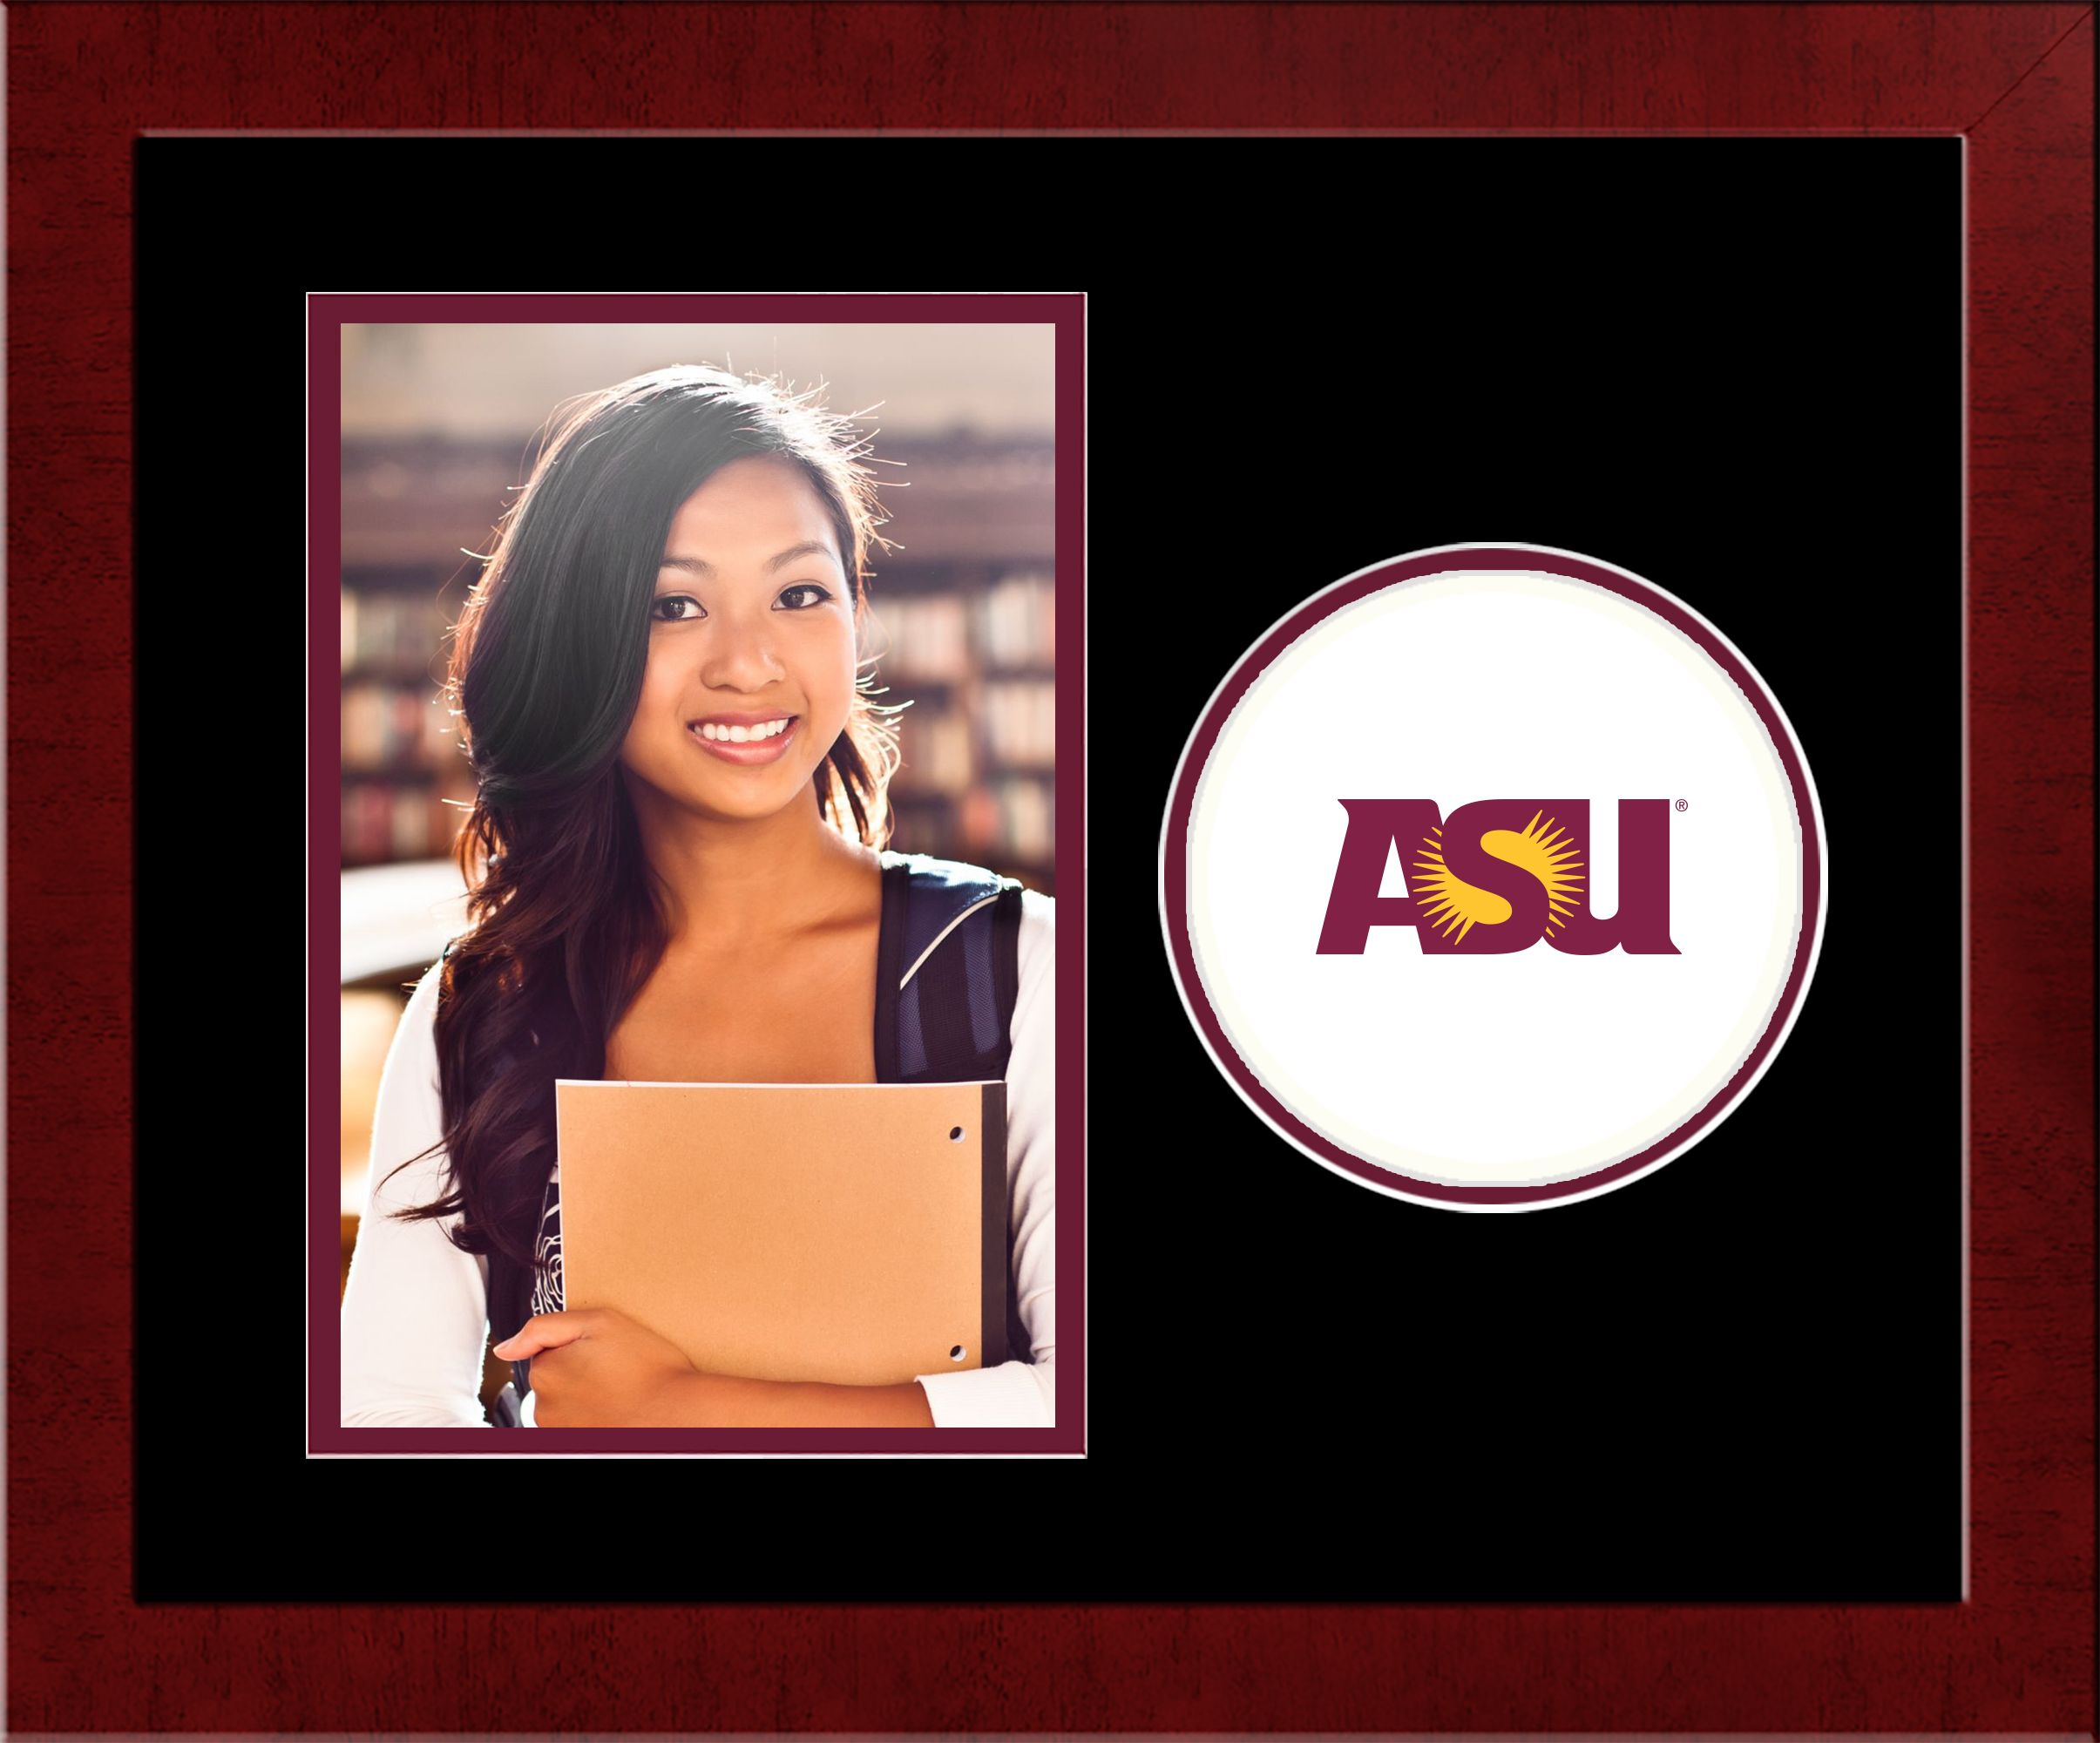 Arizona State University Spirit Photo Frame (Vertical)